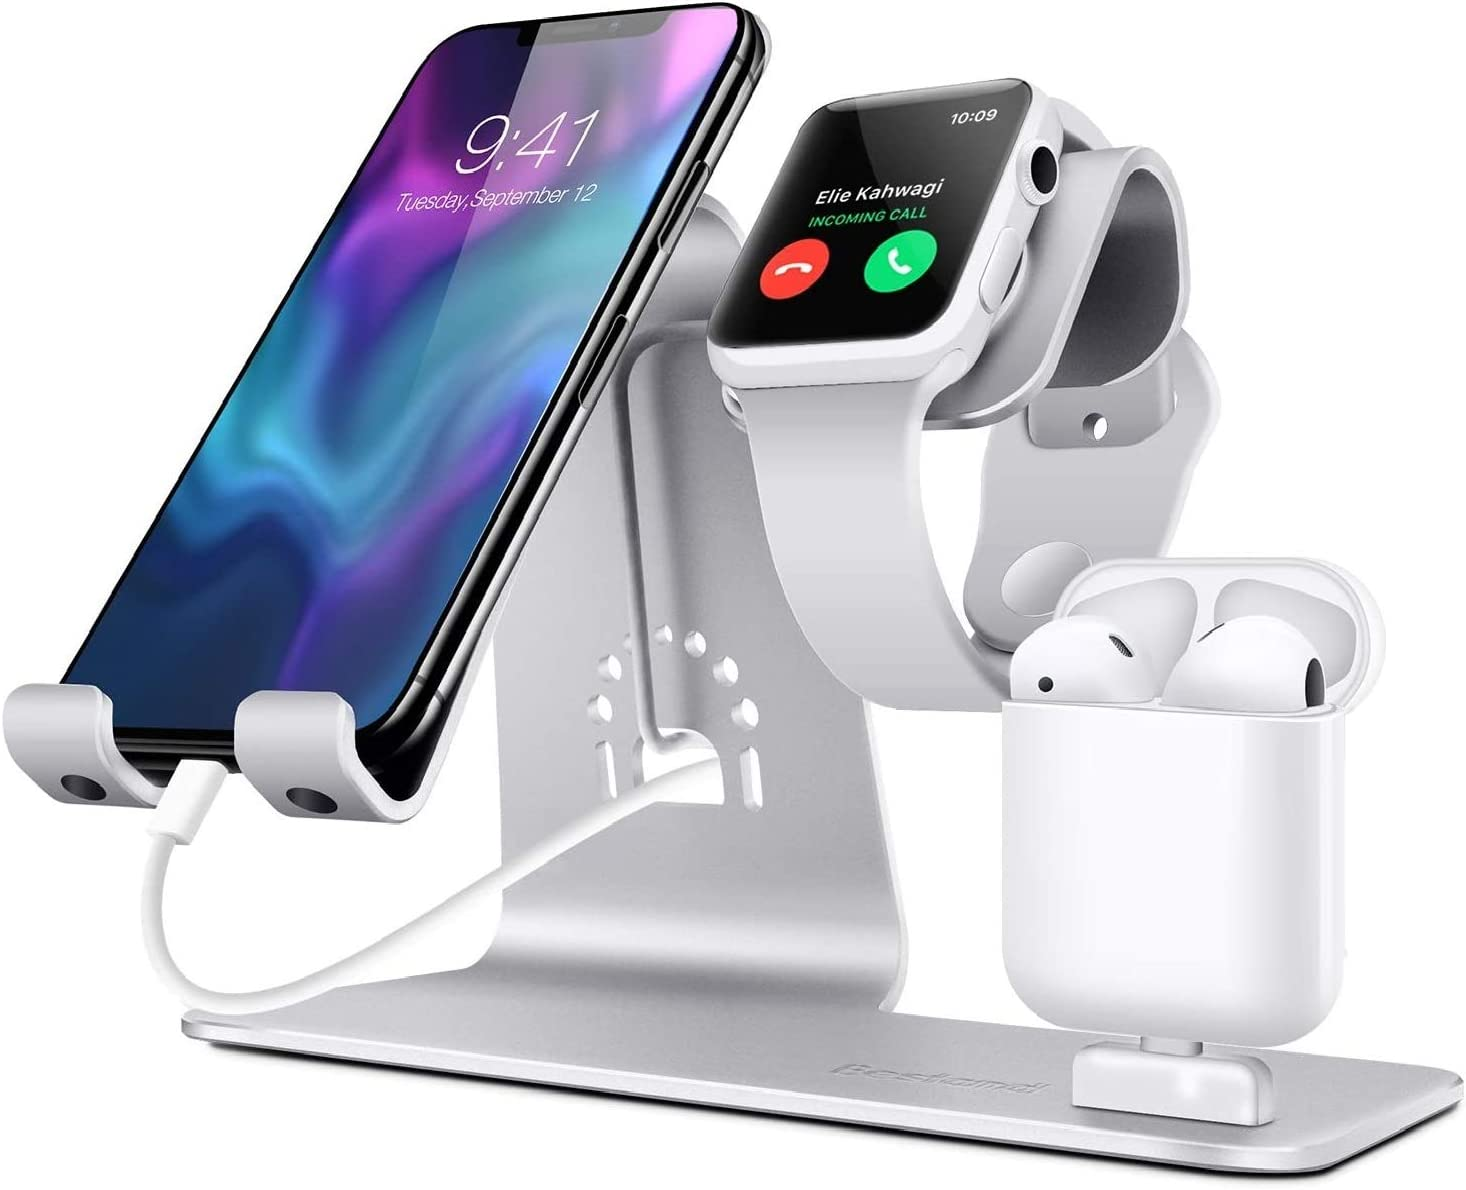 3 in 1 Cellphone Stand, Stand Holder for iPhone/iWatch, Charging Dock for Airpods